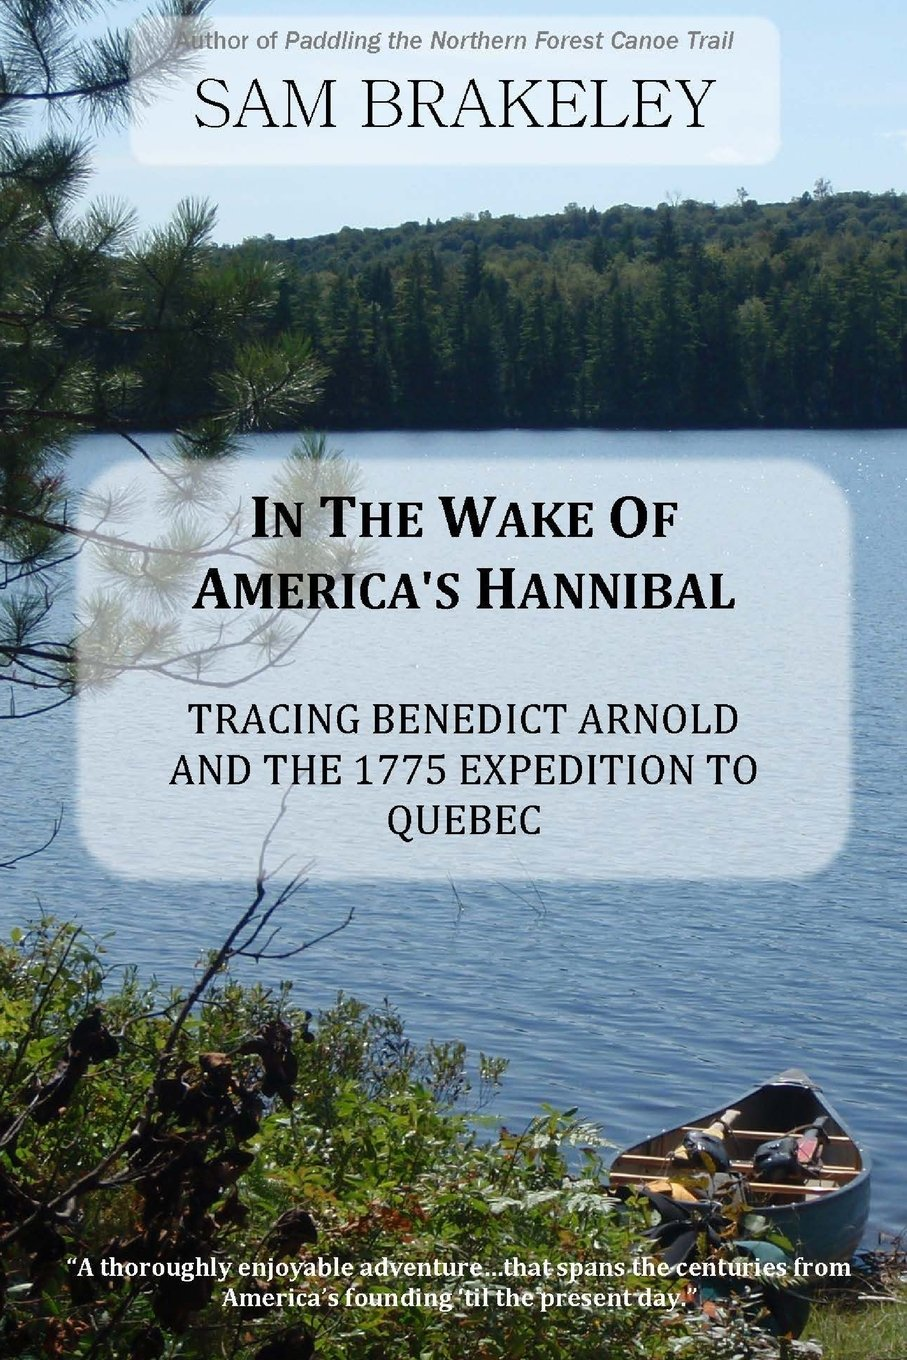 In the Wake of America's Hannibal: Tracing Benedict Arnold and the 1775 Expedition to Quebec by Canoe